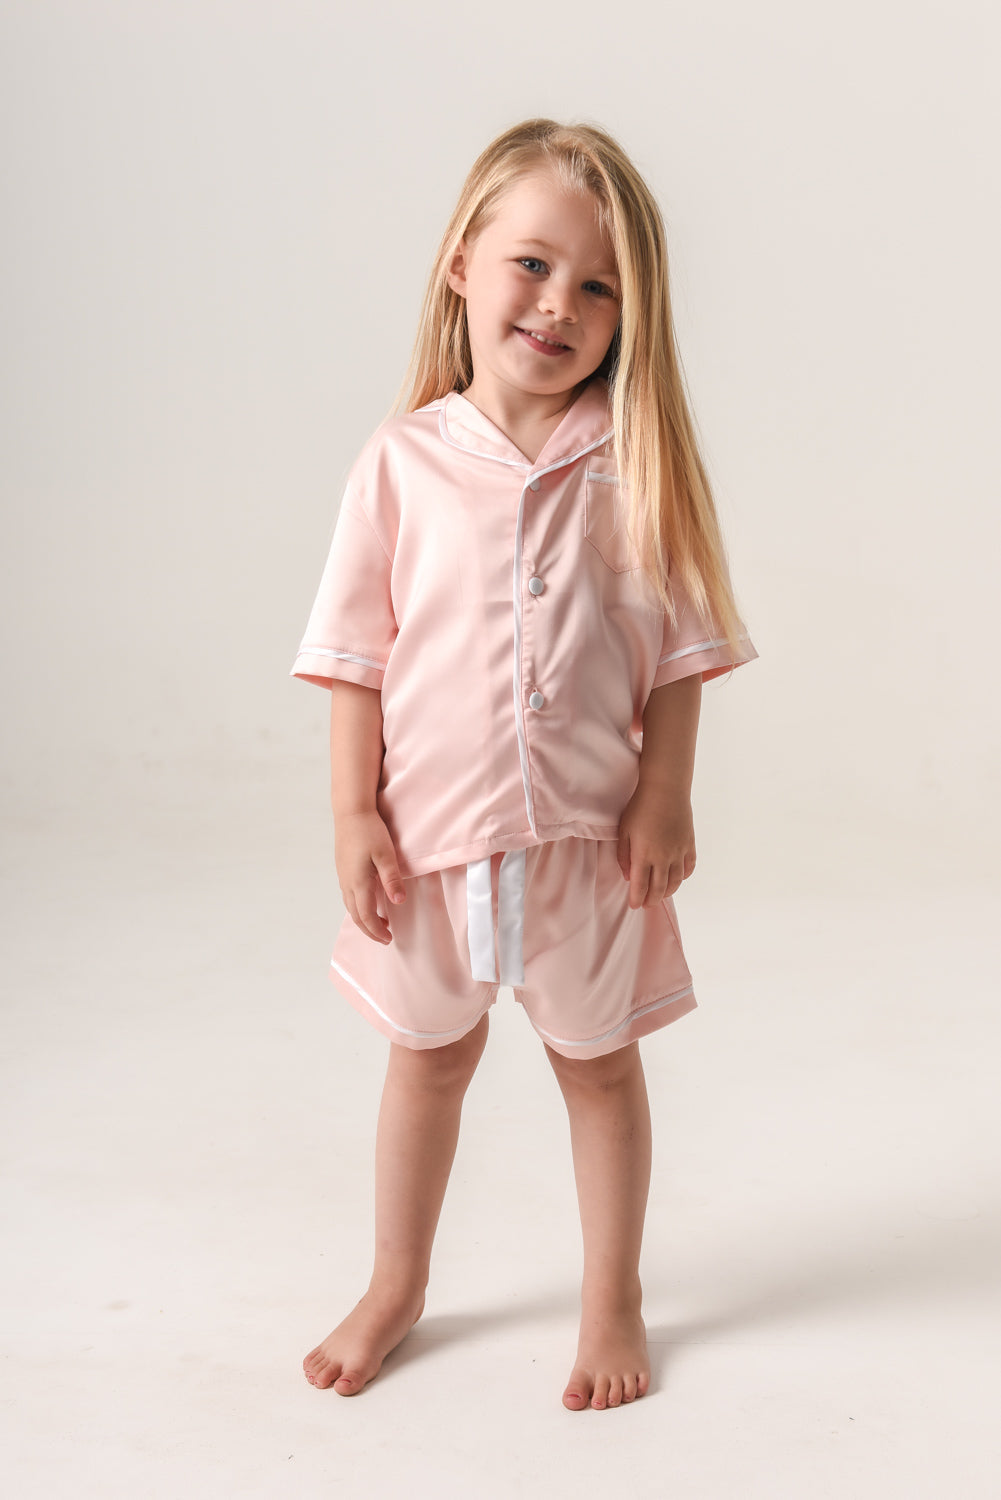 Girls Personalised Pyjamas - Blush (With White) Short-Sleeve Short Set